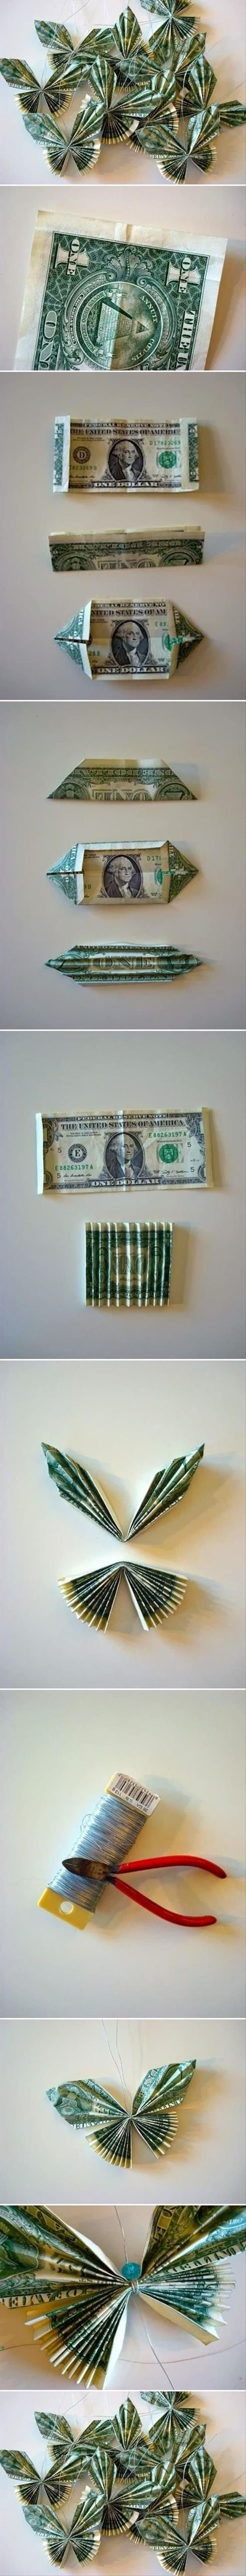 Simple Do It Yourself Craft Ideas � 50 Pics